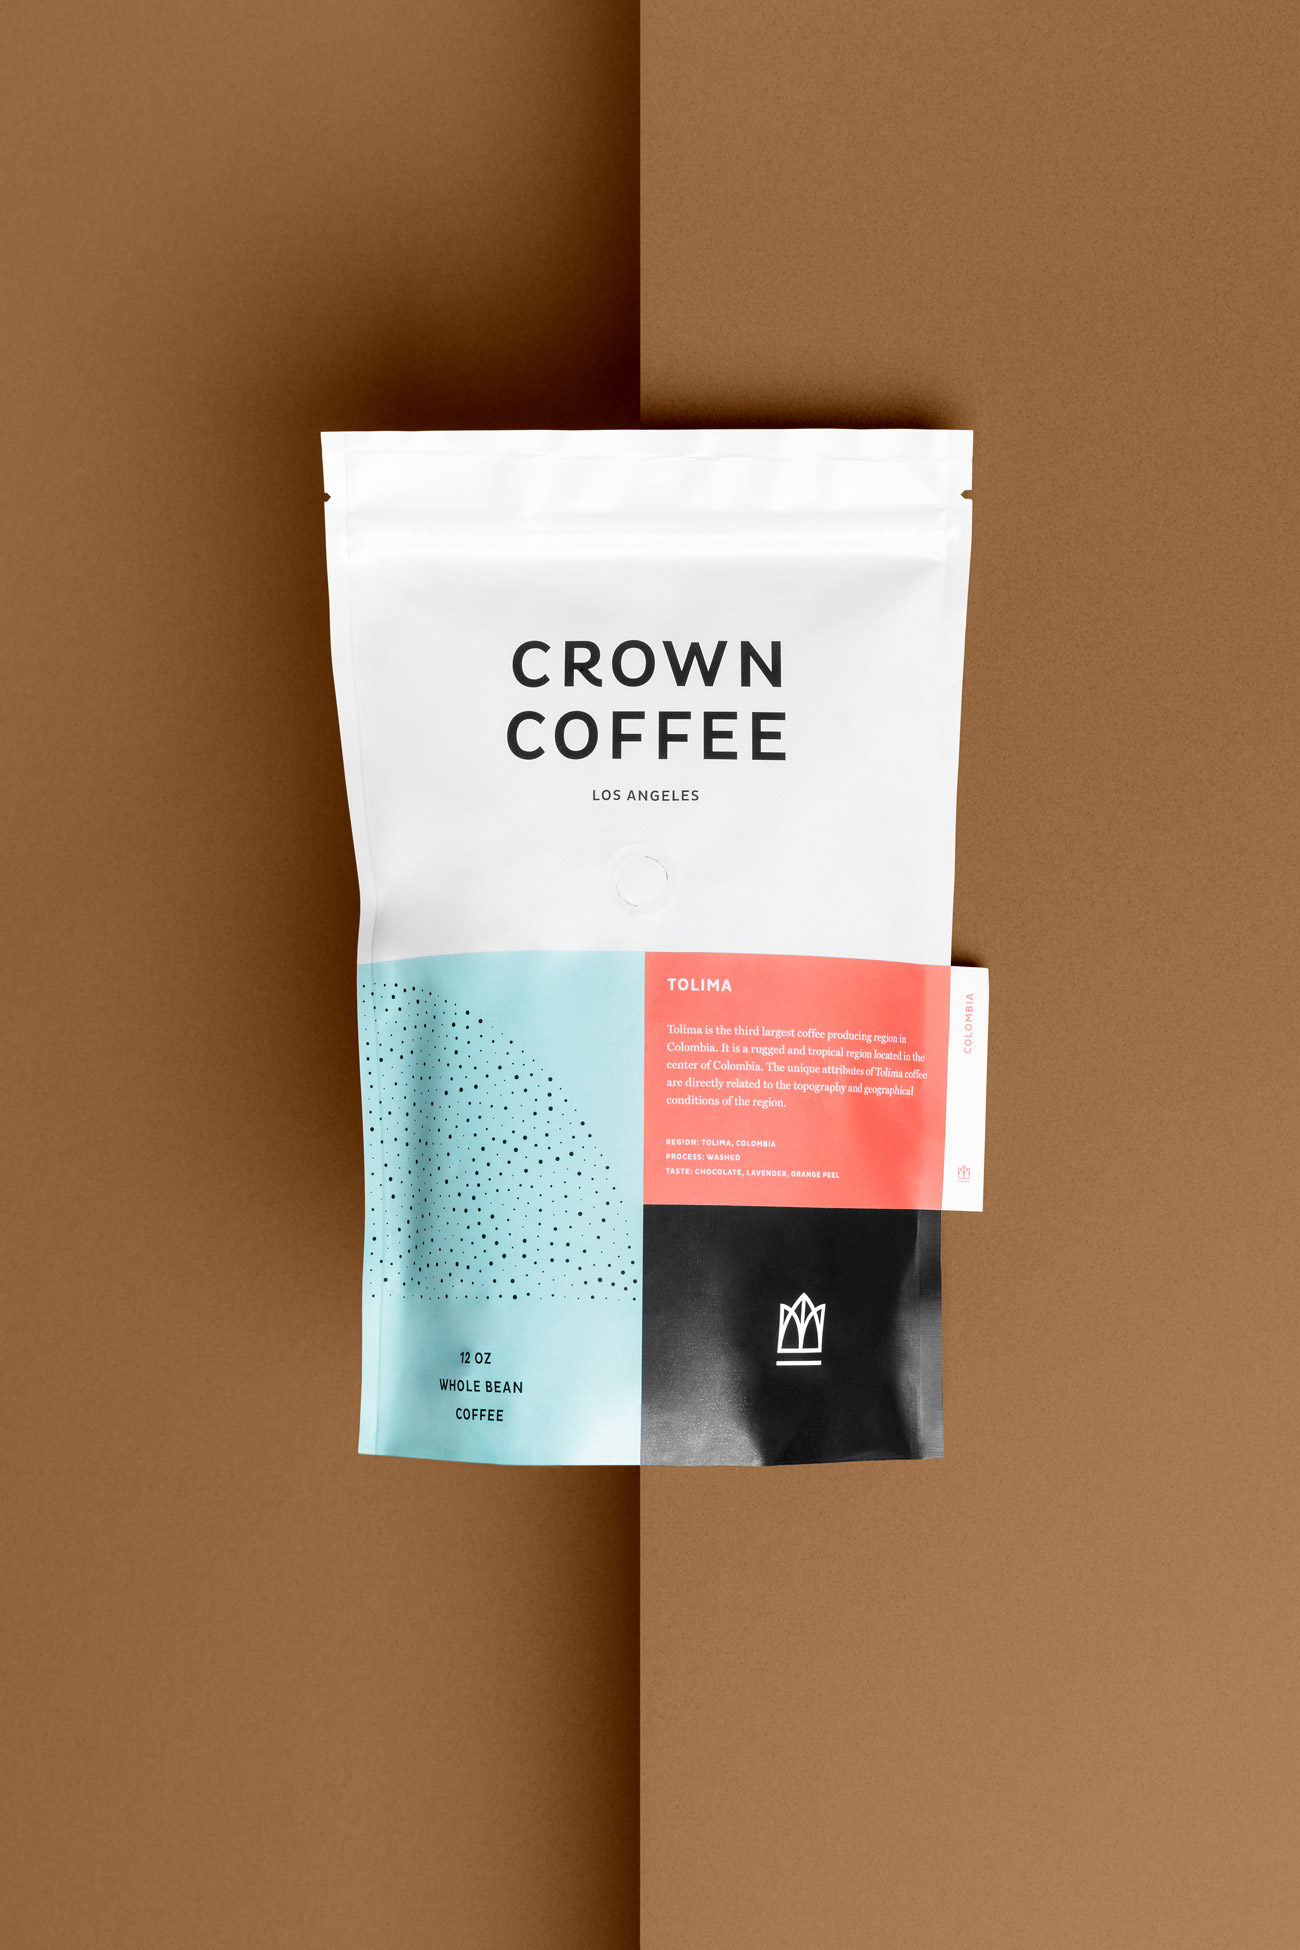 scott-snyder-mast-crown-coffee-06.jpg